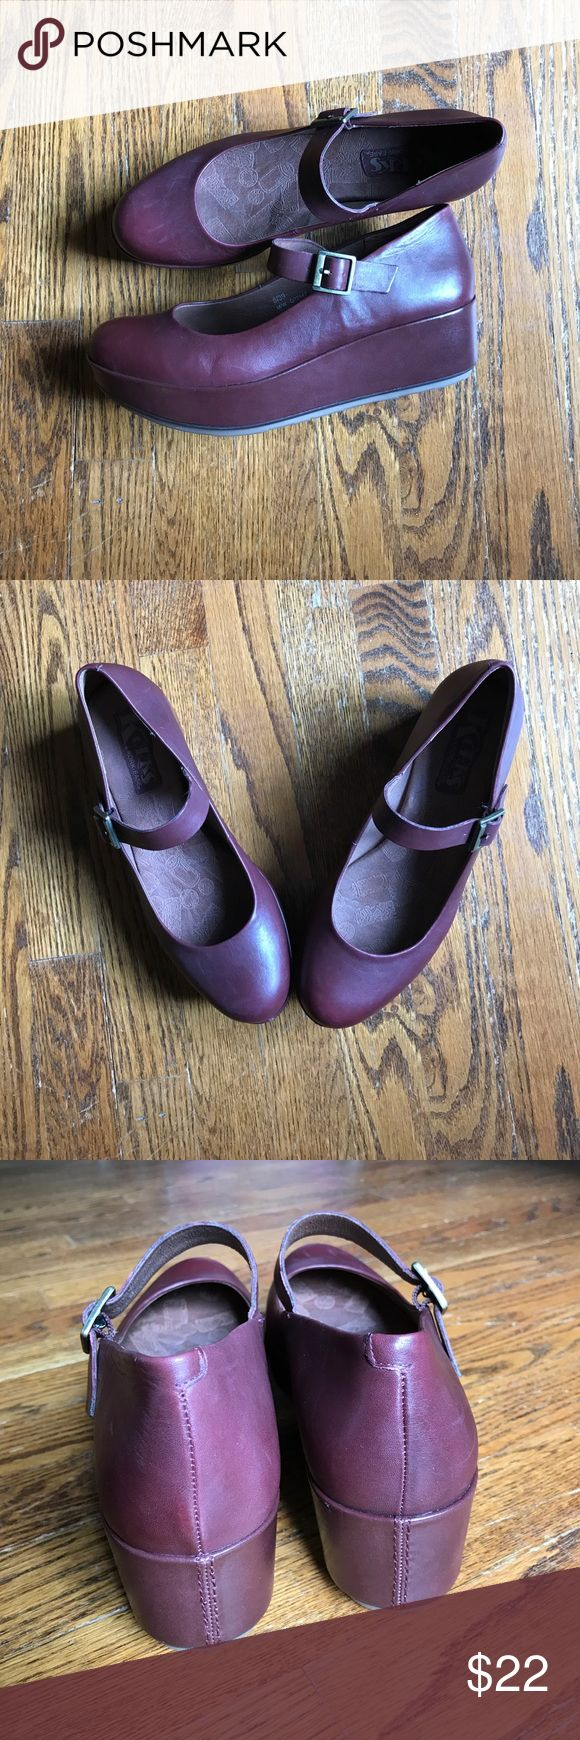 Korks by Kork Ease Mary Jane Platforms Manic Panic Pixie Dream Girl realness. Totally 90's. Purpley Maroon leather. Never worn! Korks by Kork Ease Shoes Platforms